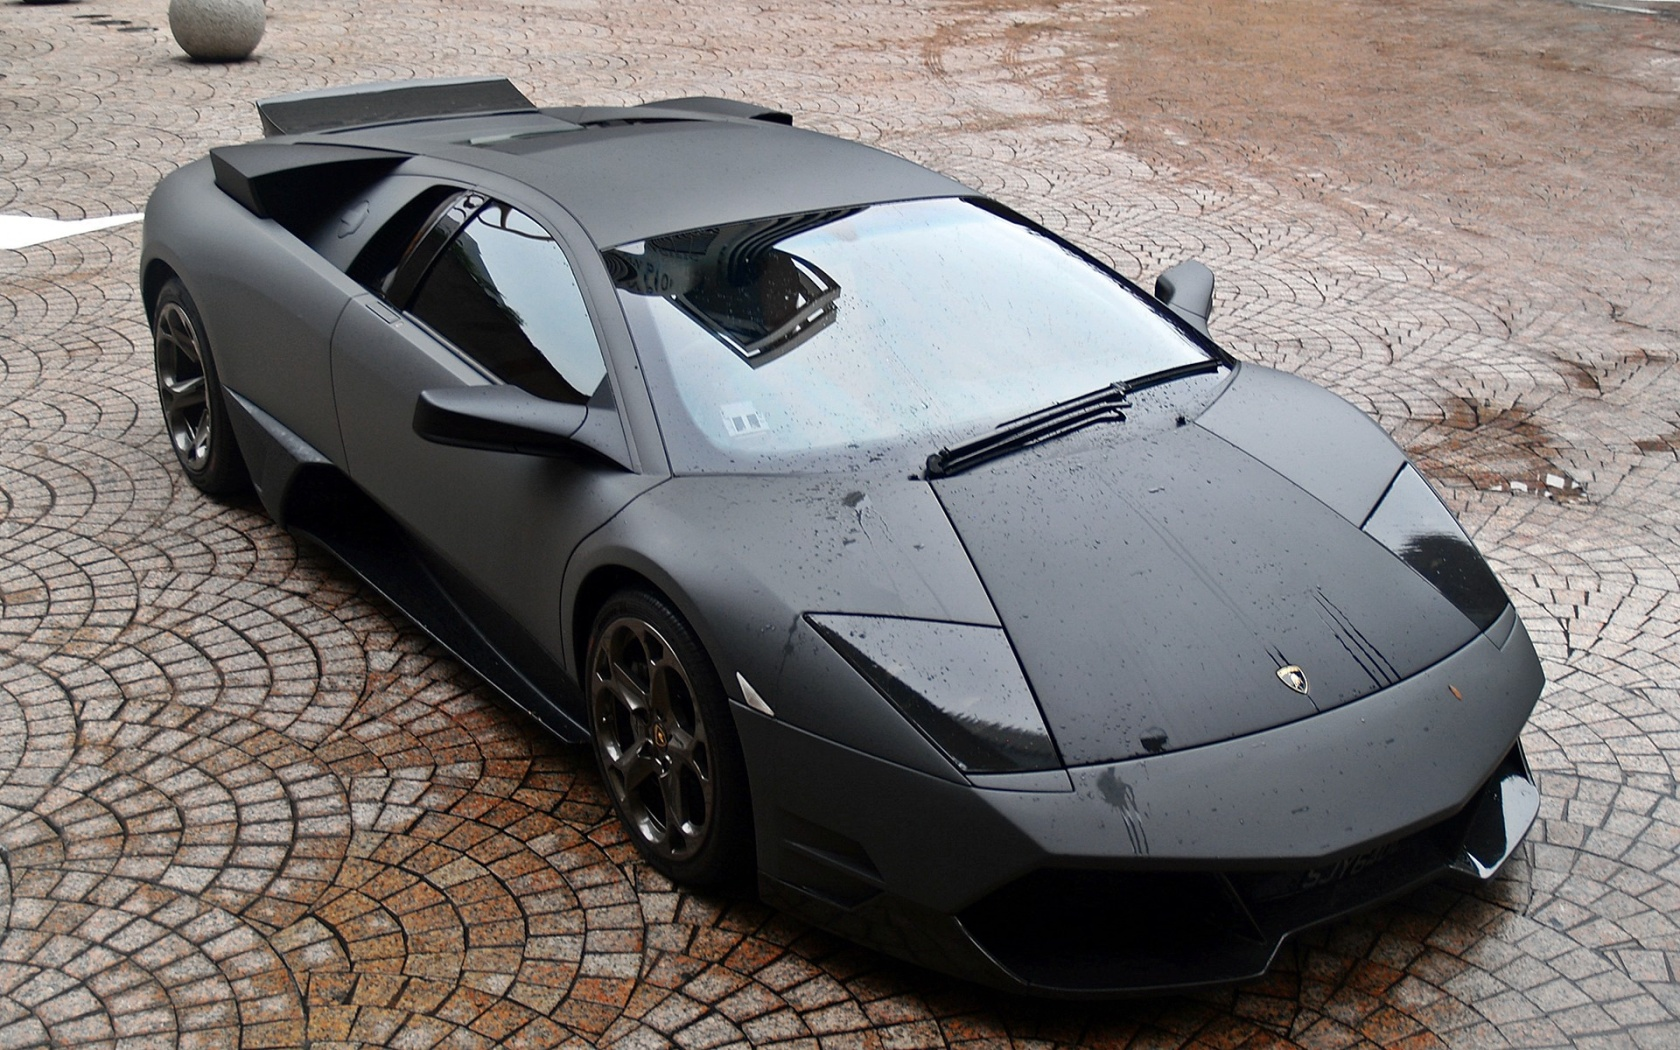 Download Stealth Fighter Matte Black Lambo Wallpaper : Widescreen 16:10 : 1280 x 800 | 1440 x 900 ...